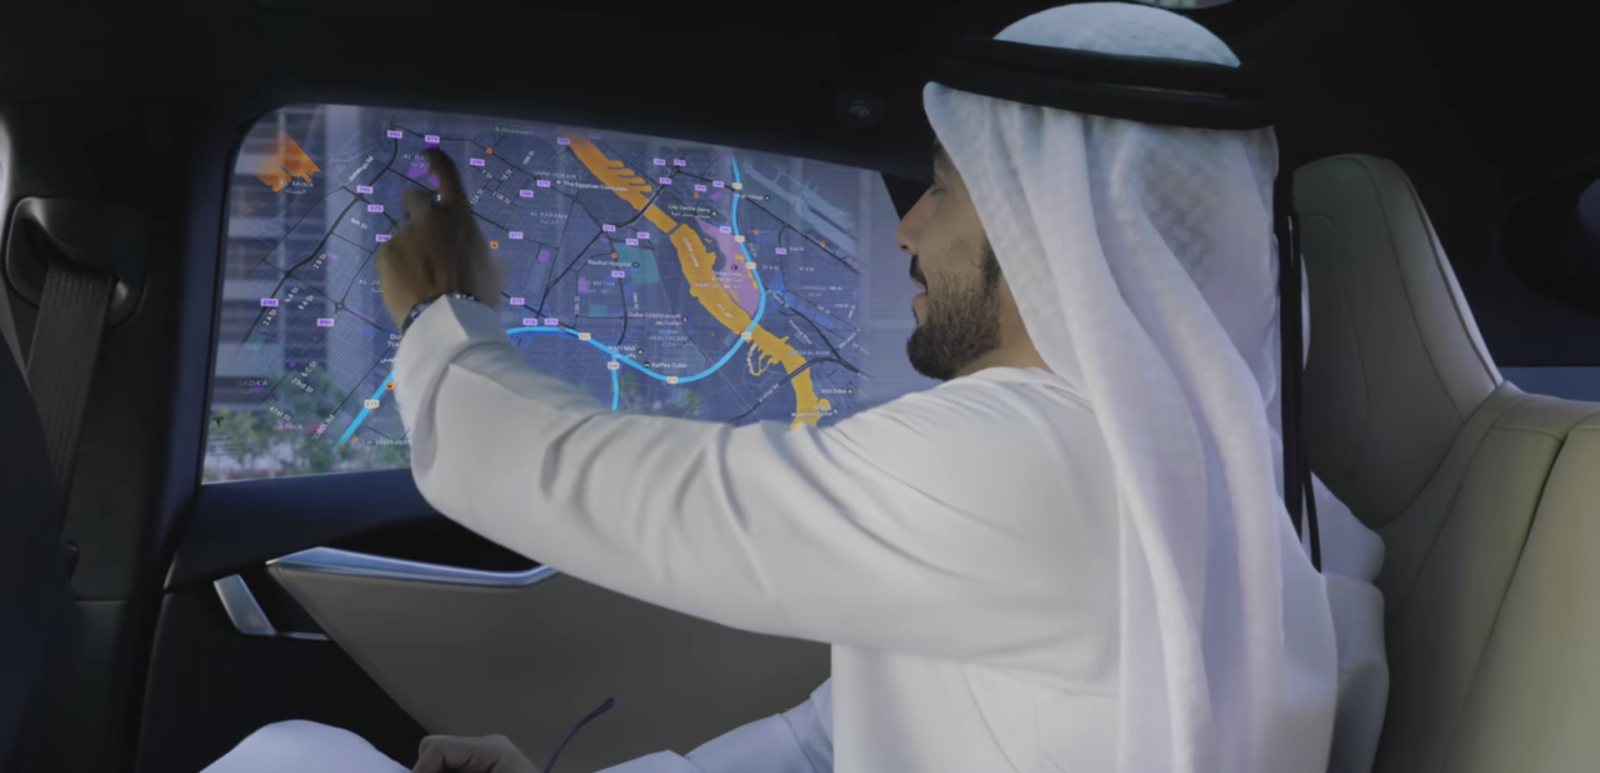 Dubai takes delivery of their first 50 Tesla vehicles to create a 'self-driving' taxi service